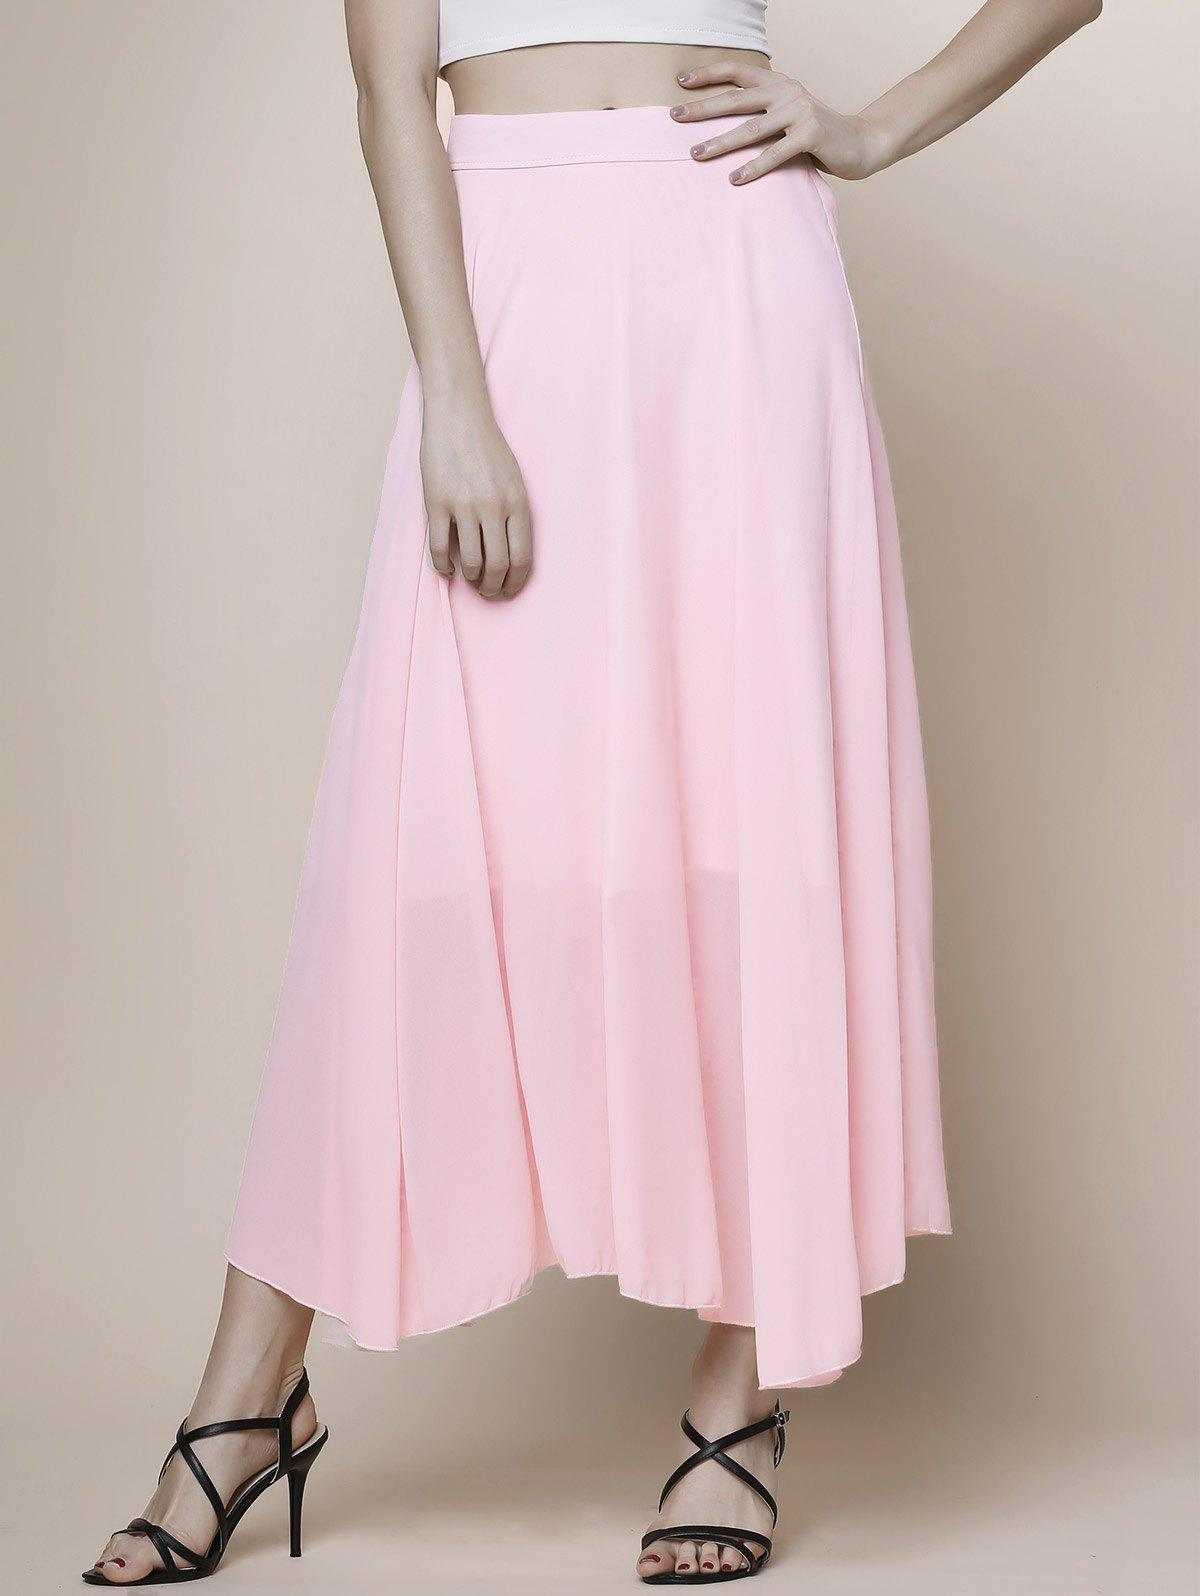 Women's High Waist Pink Chiffon Skirt